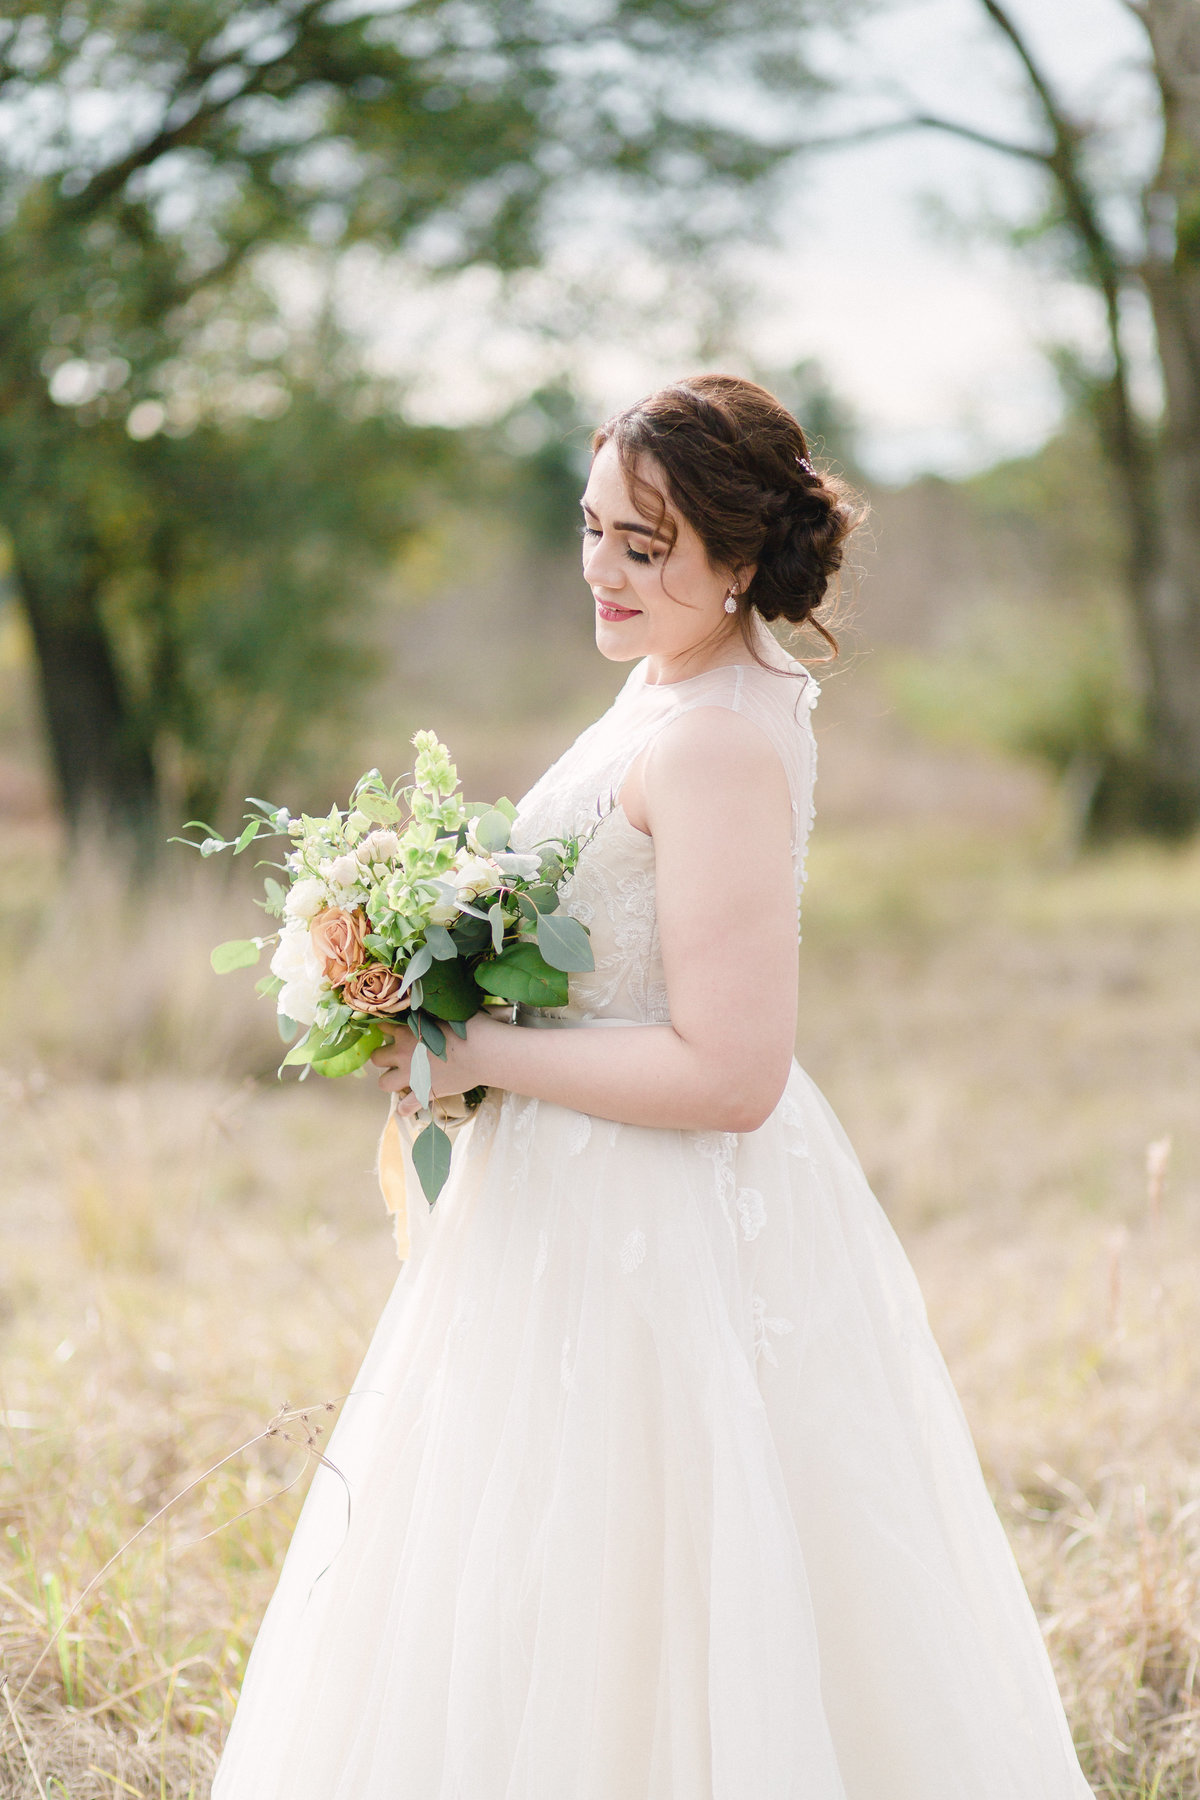 The-woodlands-bridal-session-alicia-yarrish-photography-26